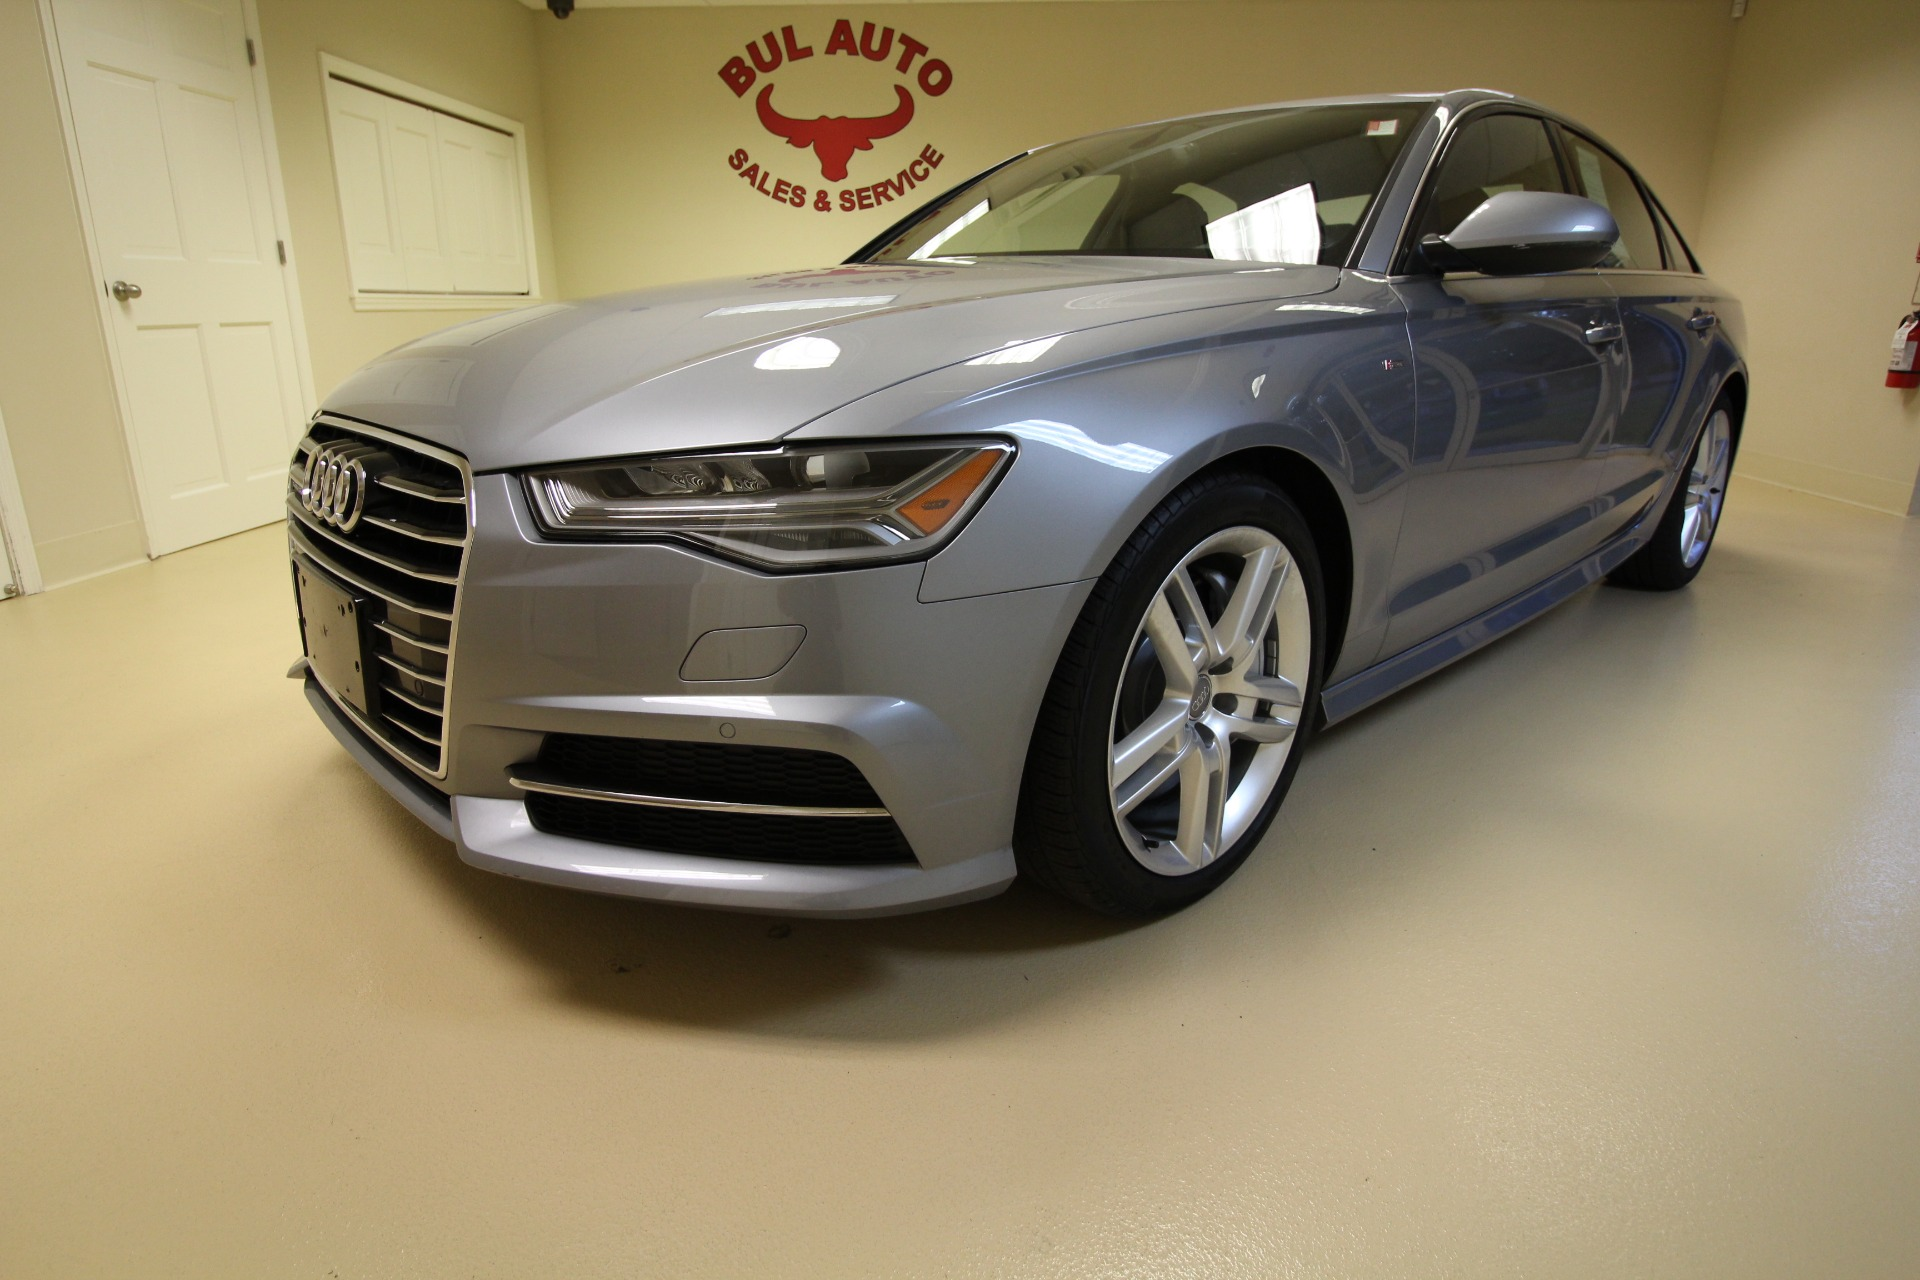 Audi A T Premium Plus Stock For Sale Near Albany - Audi of albany